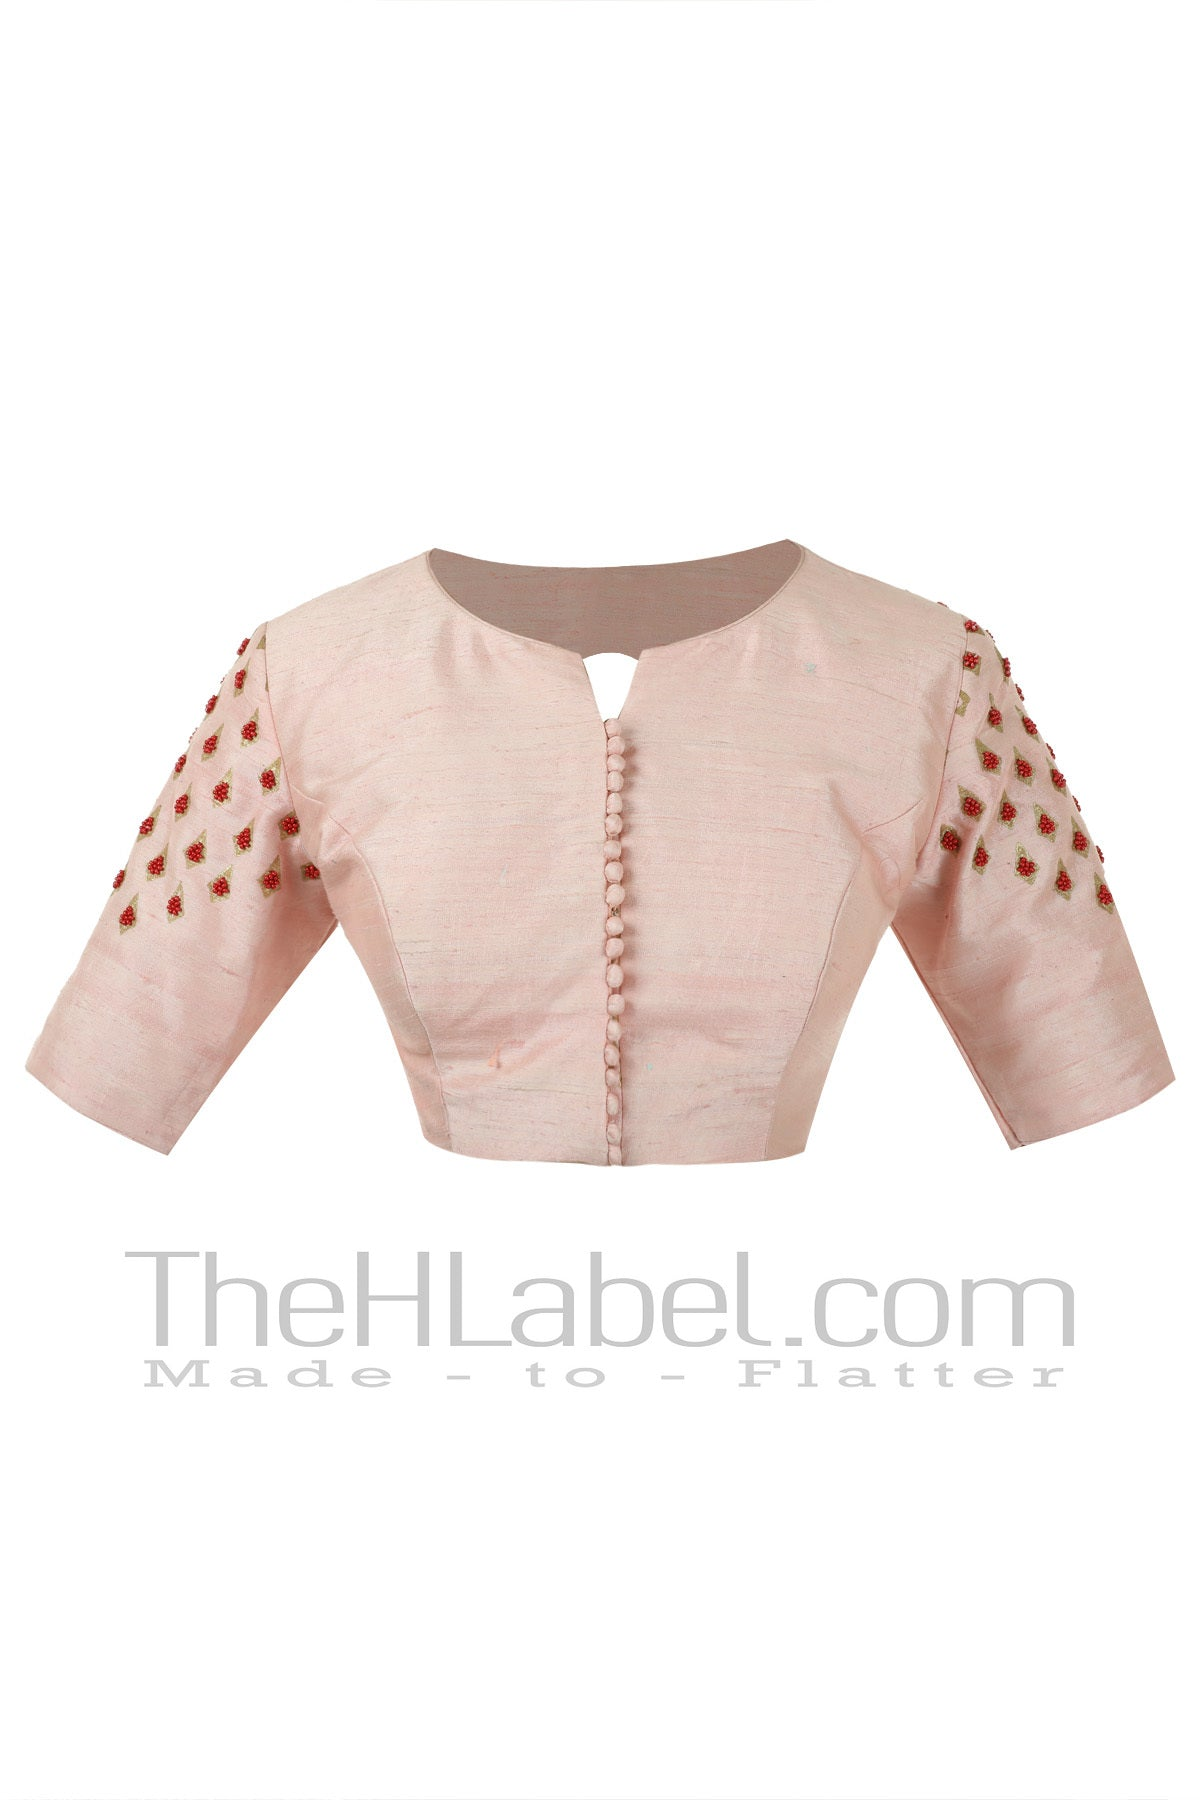 Peach blouse with hand embroidery on sleeves